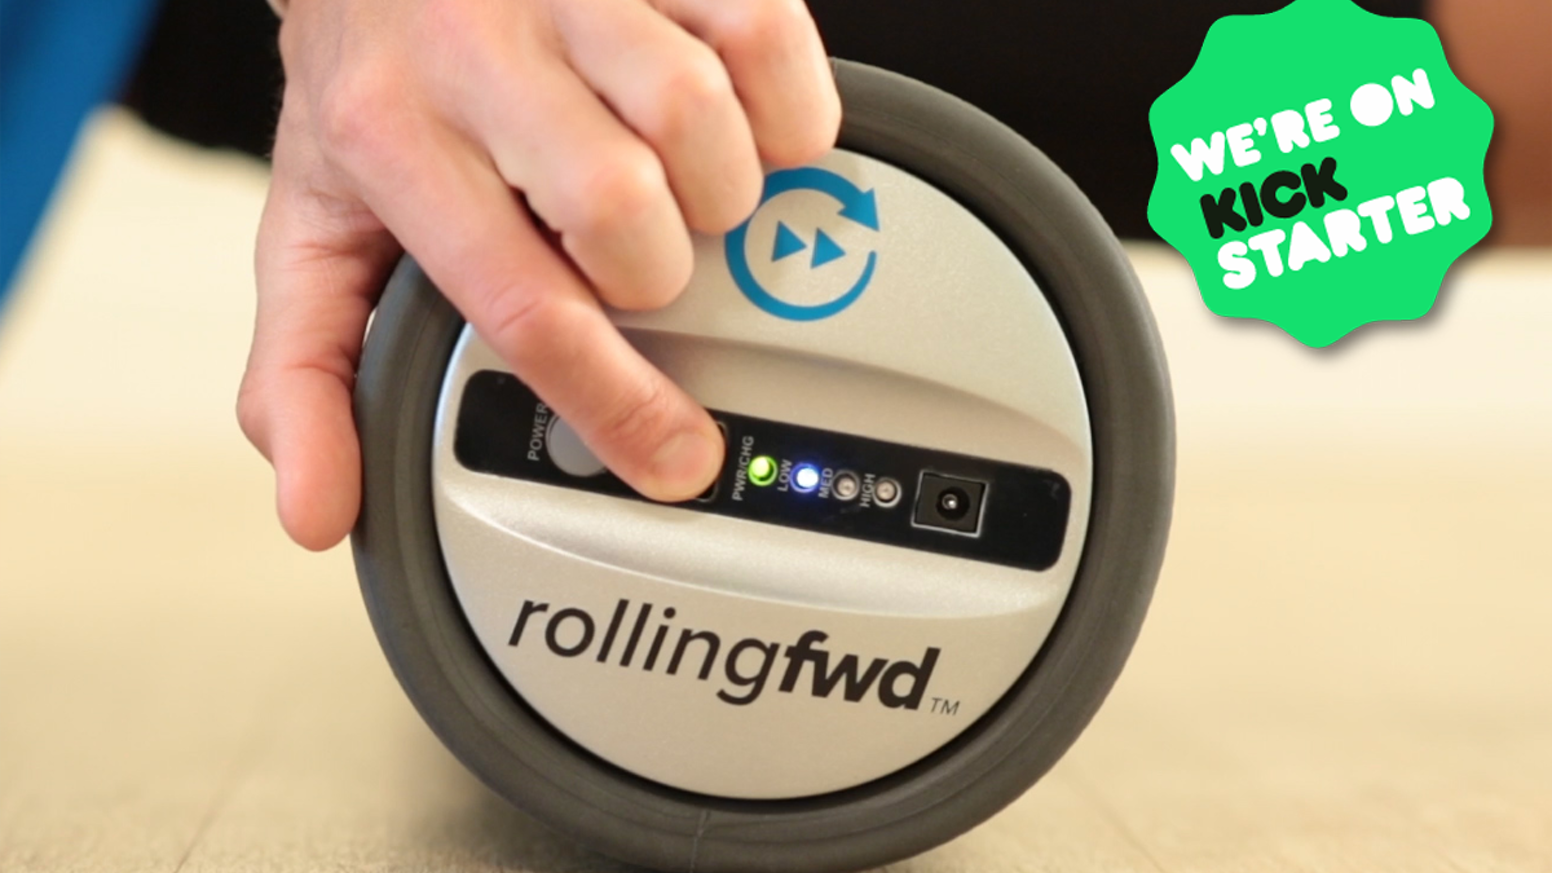 Faster recovery and better performance with high-tech vibration foam rolling. Keep rolling forward!